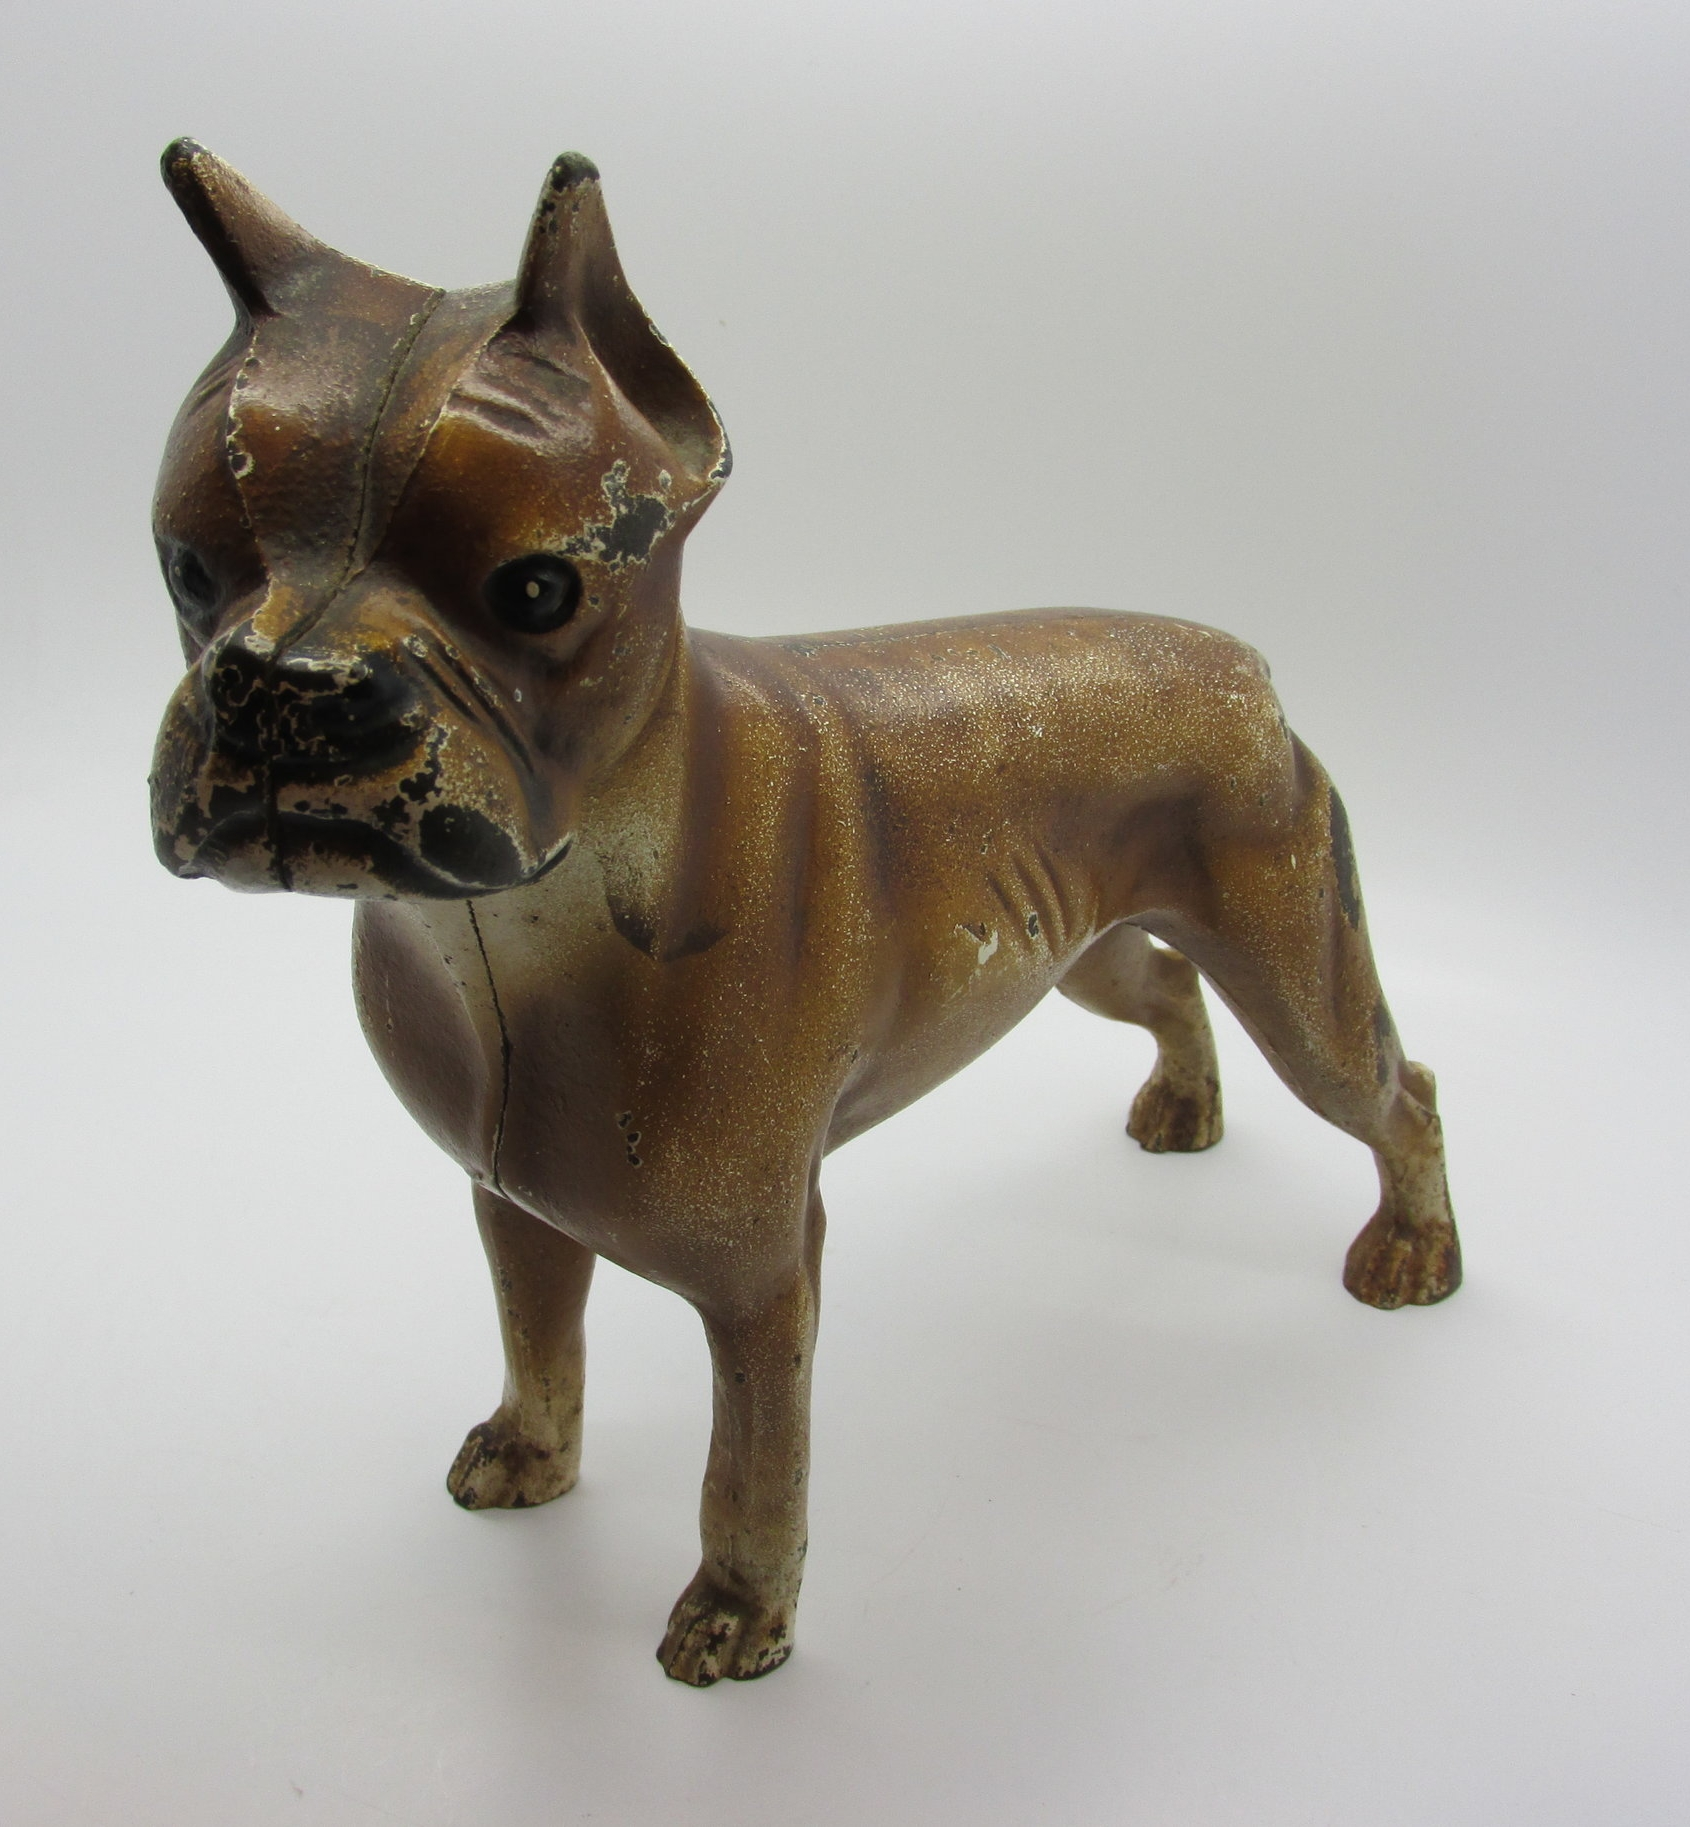 - This little boy is a vintage,Hubley, Cast Iron, Boxer dog. He is number 307,a large, doorstop size, and very rare. The Hubley Manufacturing Co., out of Lancaster, PA produced this vintage beauty in the 1930s. They started making cast iron toys in 1894. These were made and painted by hand. He is quieter than most dogs and doesn't eat as much. This vintage Hubley doorstop is available on my ebay site. Click here to view.